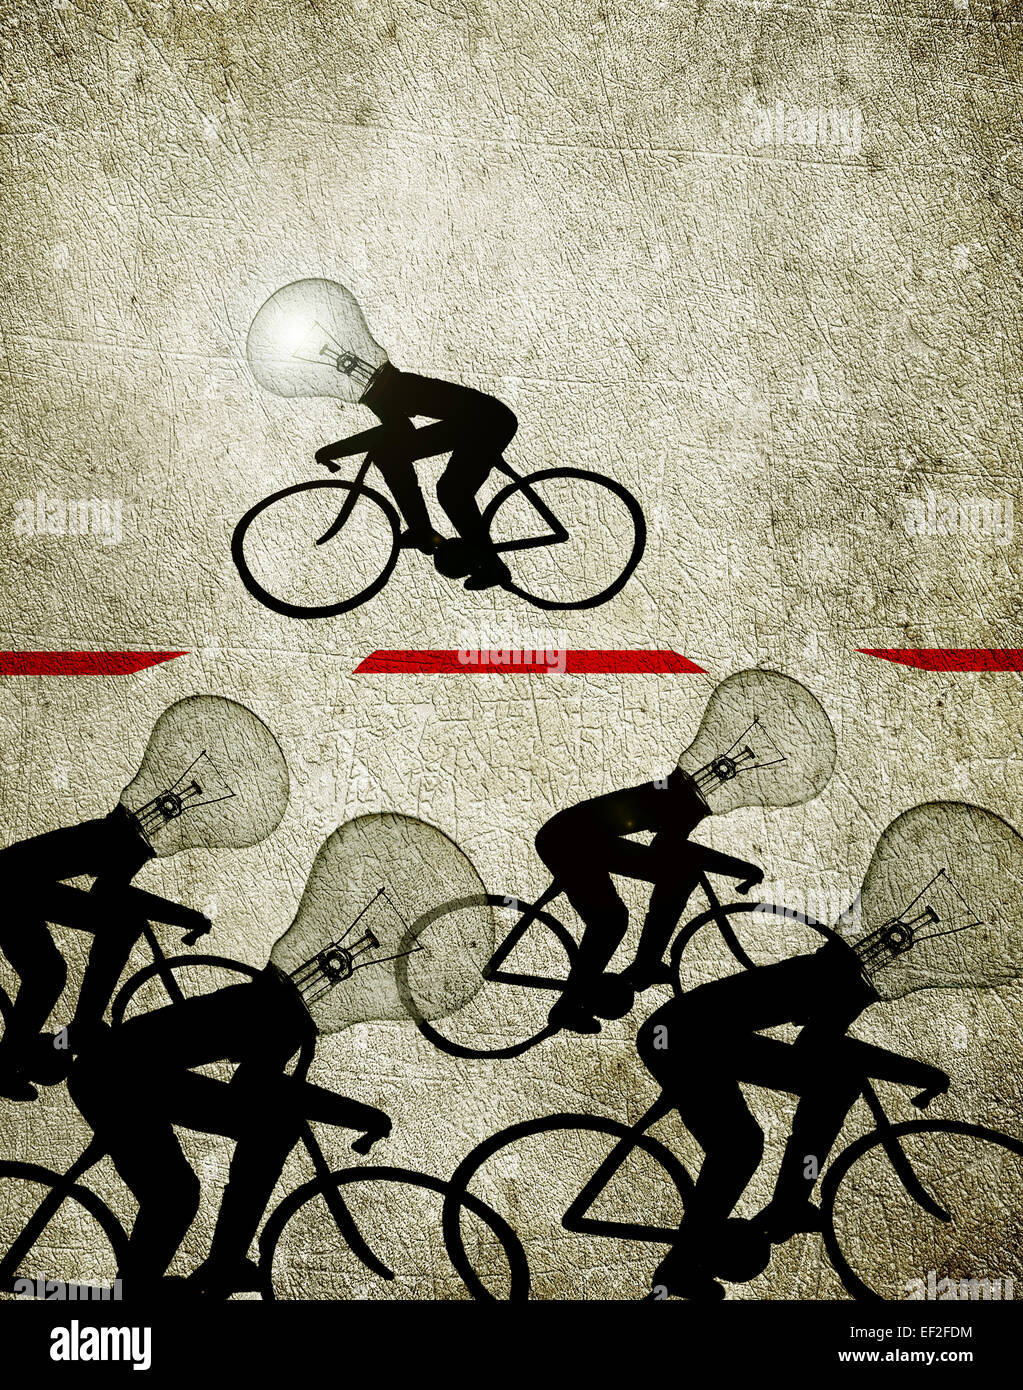 cyclists with bulb heads illustration creativity concept - Stock Image